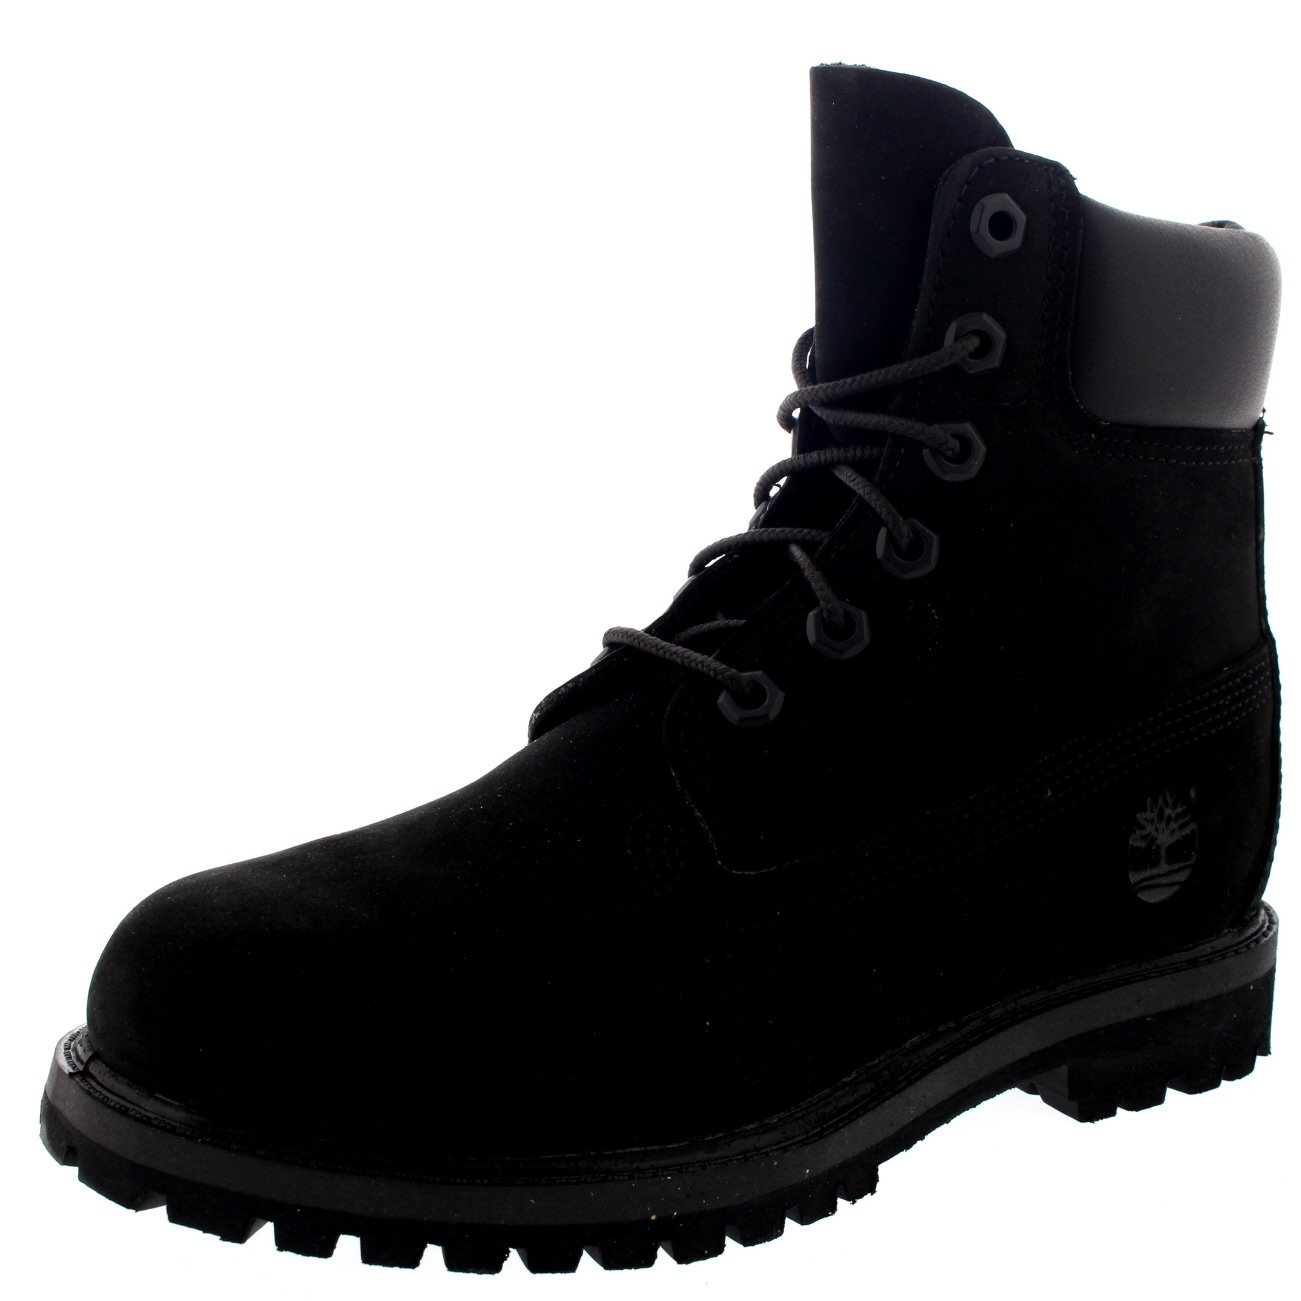 Amazon.com: Womens Timberland 6 Inch Premium Suede Black Lace Up Ankle High Boots - Black - 8: Sports & Outdoors